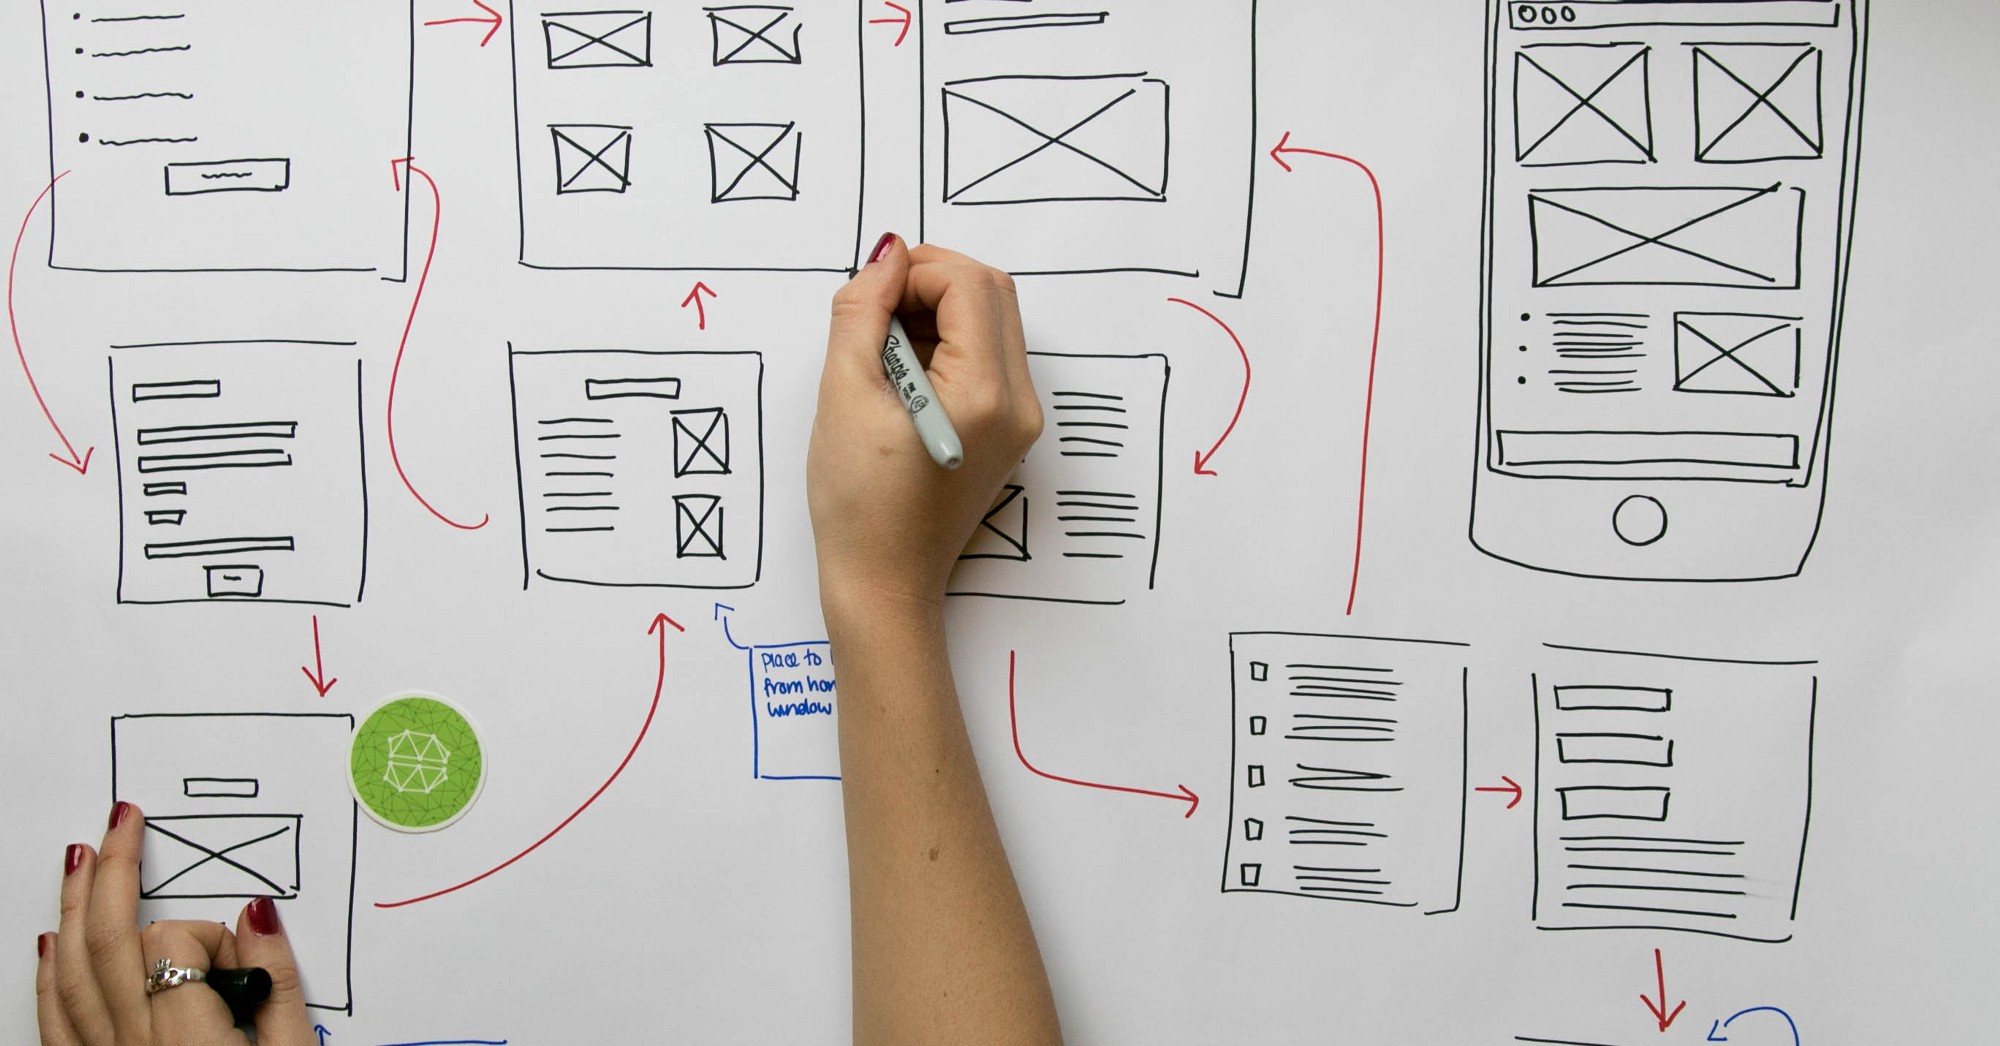 What Makes Ux Design Your Passion Prototypr